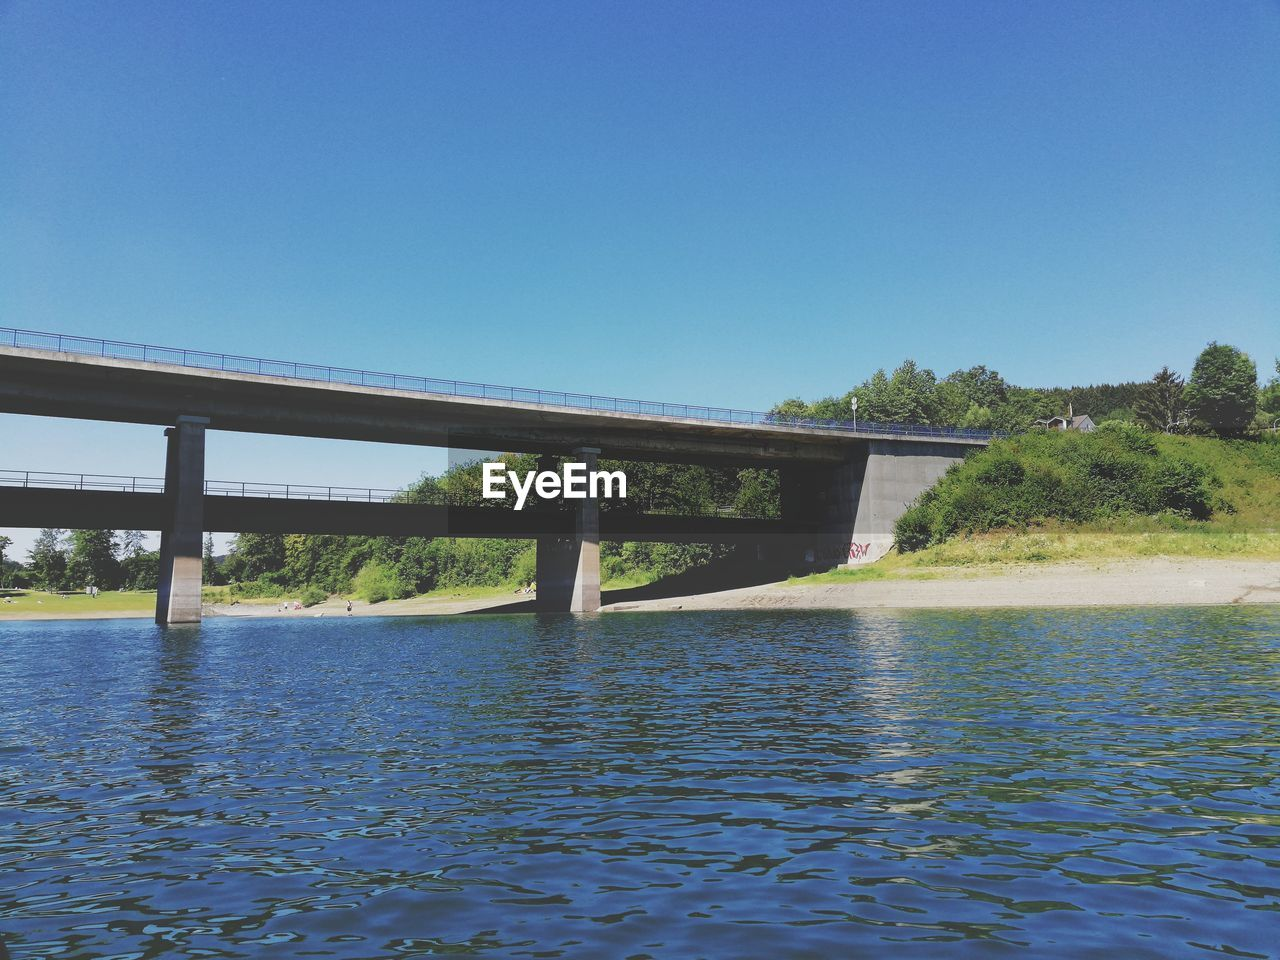 water, sky, bridge, built structure, clear sky, architecture, bridge - man made structure, copy space, connection, blue, river, nature, no people, waterfront, day, scenics - nature, tree, plant, transportation, outdoors, architectural column, flowing water, swimming pool